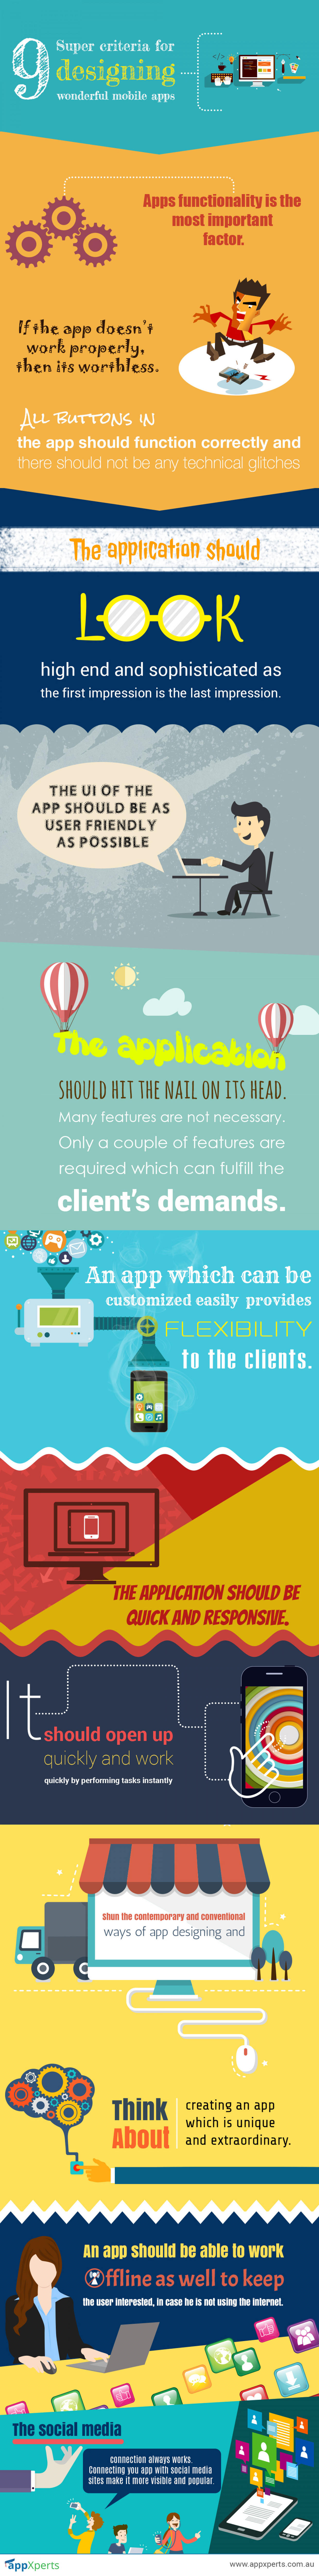 9 Amazing Things To Note Down To Design A Useful Mobile App Infographic